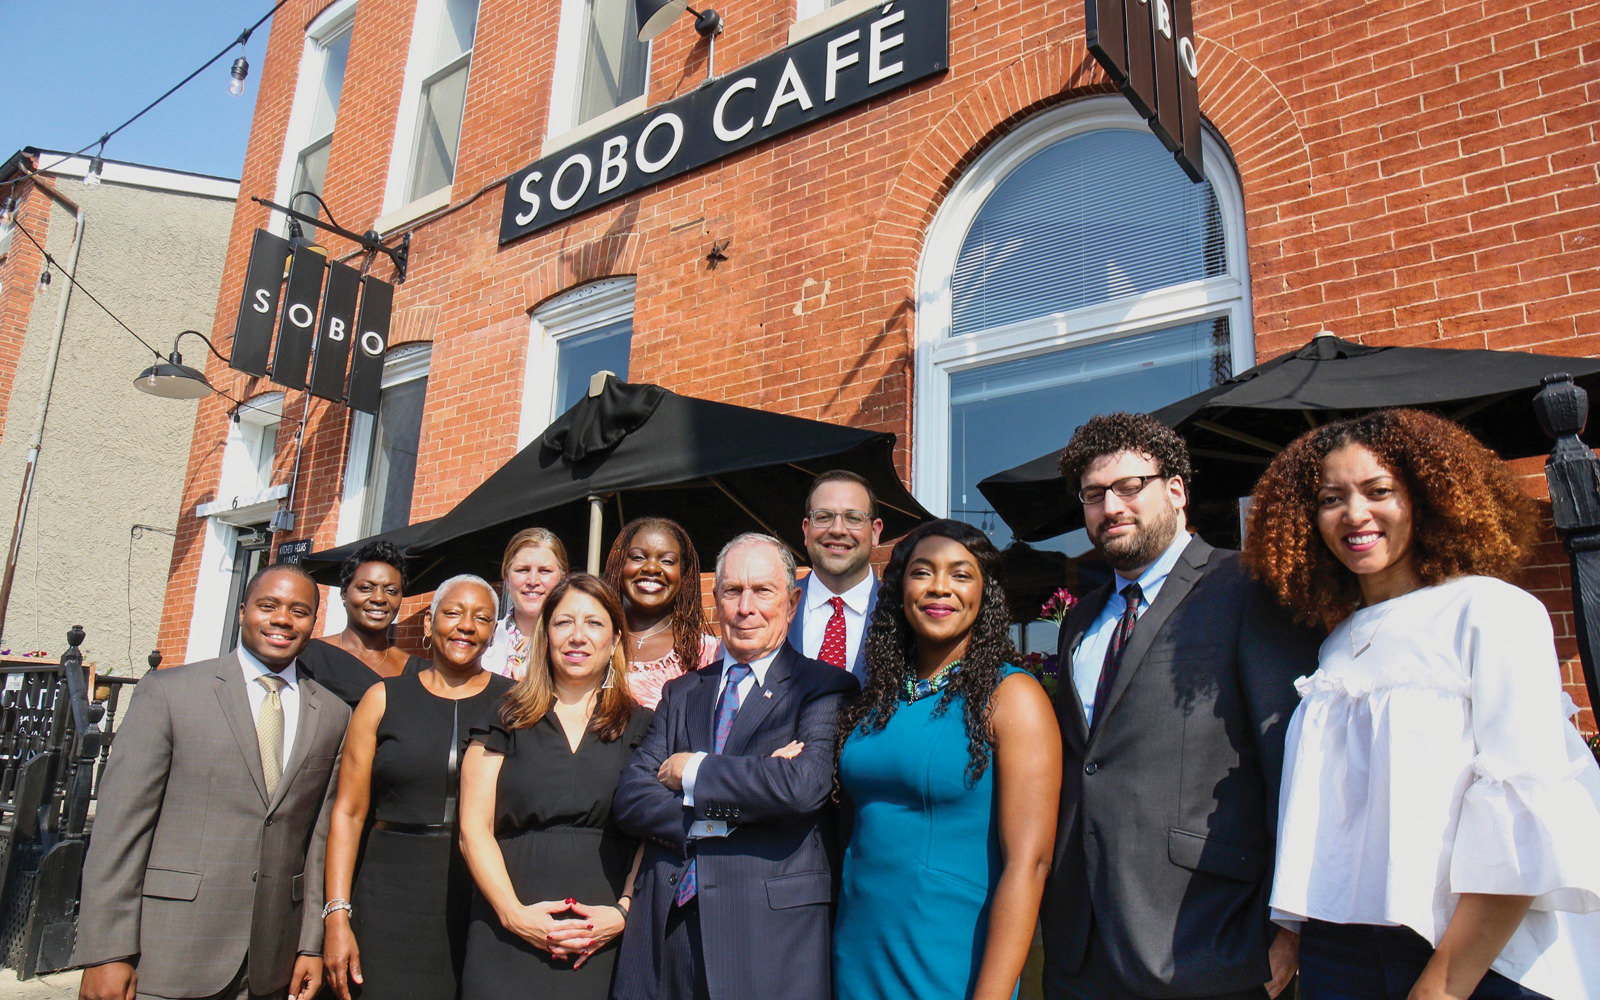 Mike Bloomberg visits SoBo Café, a graduate of the Goldman Sachs 10,000 Small Businesses Baltimore program.